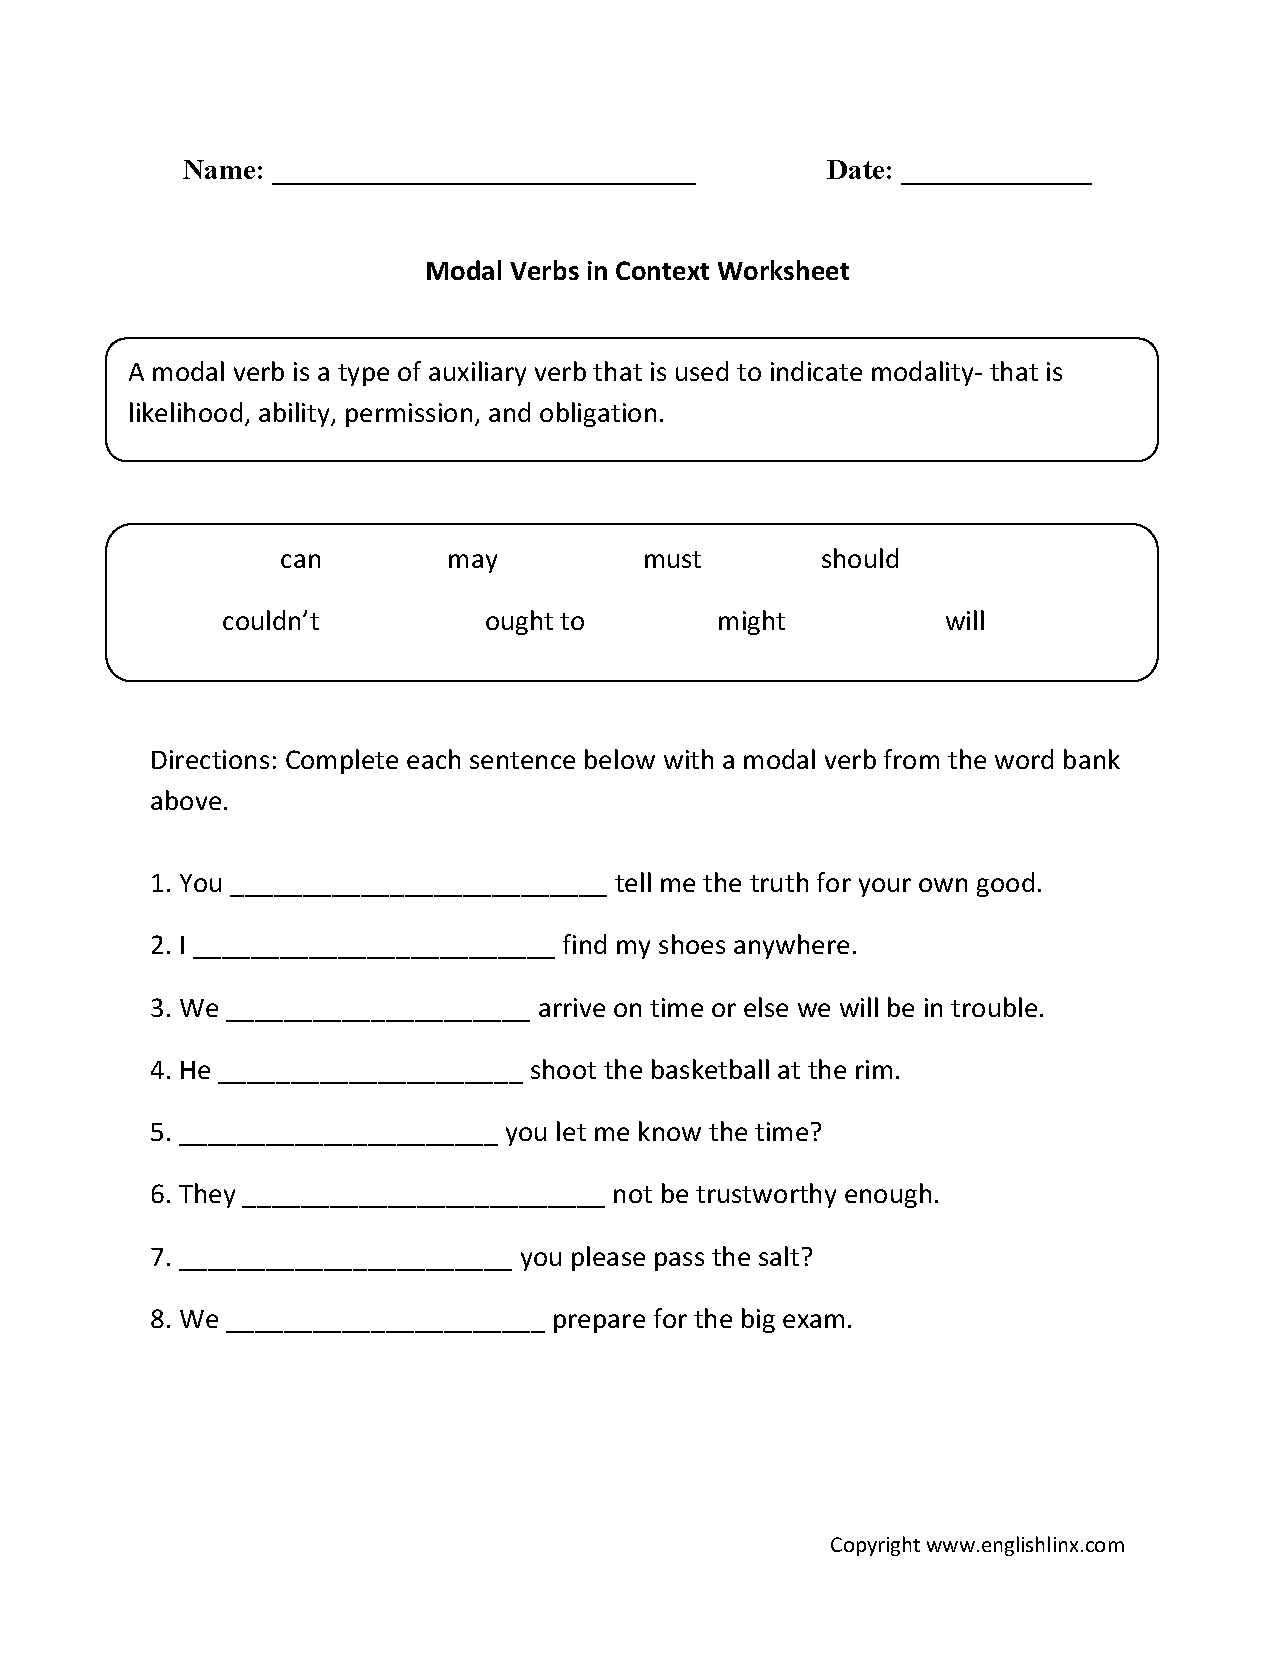 Aldiablosus  Ravishing Worksheet On Verb  Coffemix With Excellent Englishlinxcom  Verbs Worksheets With Beauteous Writing Practice Worksheets For First Grade Also Px Pap Lower Worksheet In Addition Science Lab Safety Worksheets And Telling The Time Worksheets Year  As Well As Printable Sight Words Worksheets Additionally Chemical Equation Balance Worksheet From Coffemixcom With Aldiablosus  Excellent Worksheet On Verb  Coffemix With Beauteous Englishlinxcom  Verbs Worksheets And Ravishing Writing Practice Worksheets For First Grade Also Px Pap Lower Worksheet In Addition Science Lab Safety Worksheets From Coffemixcom